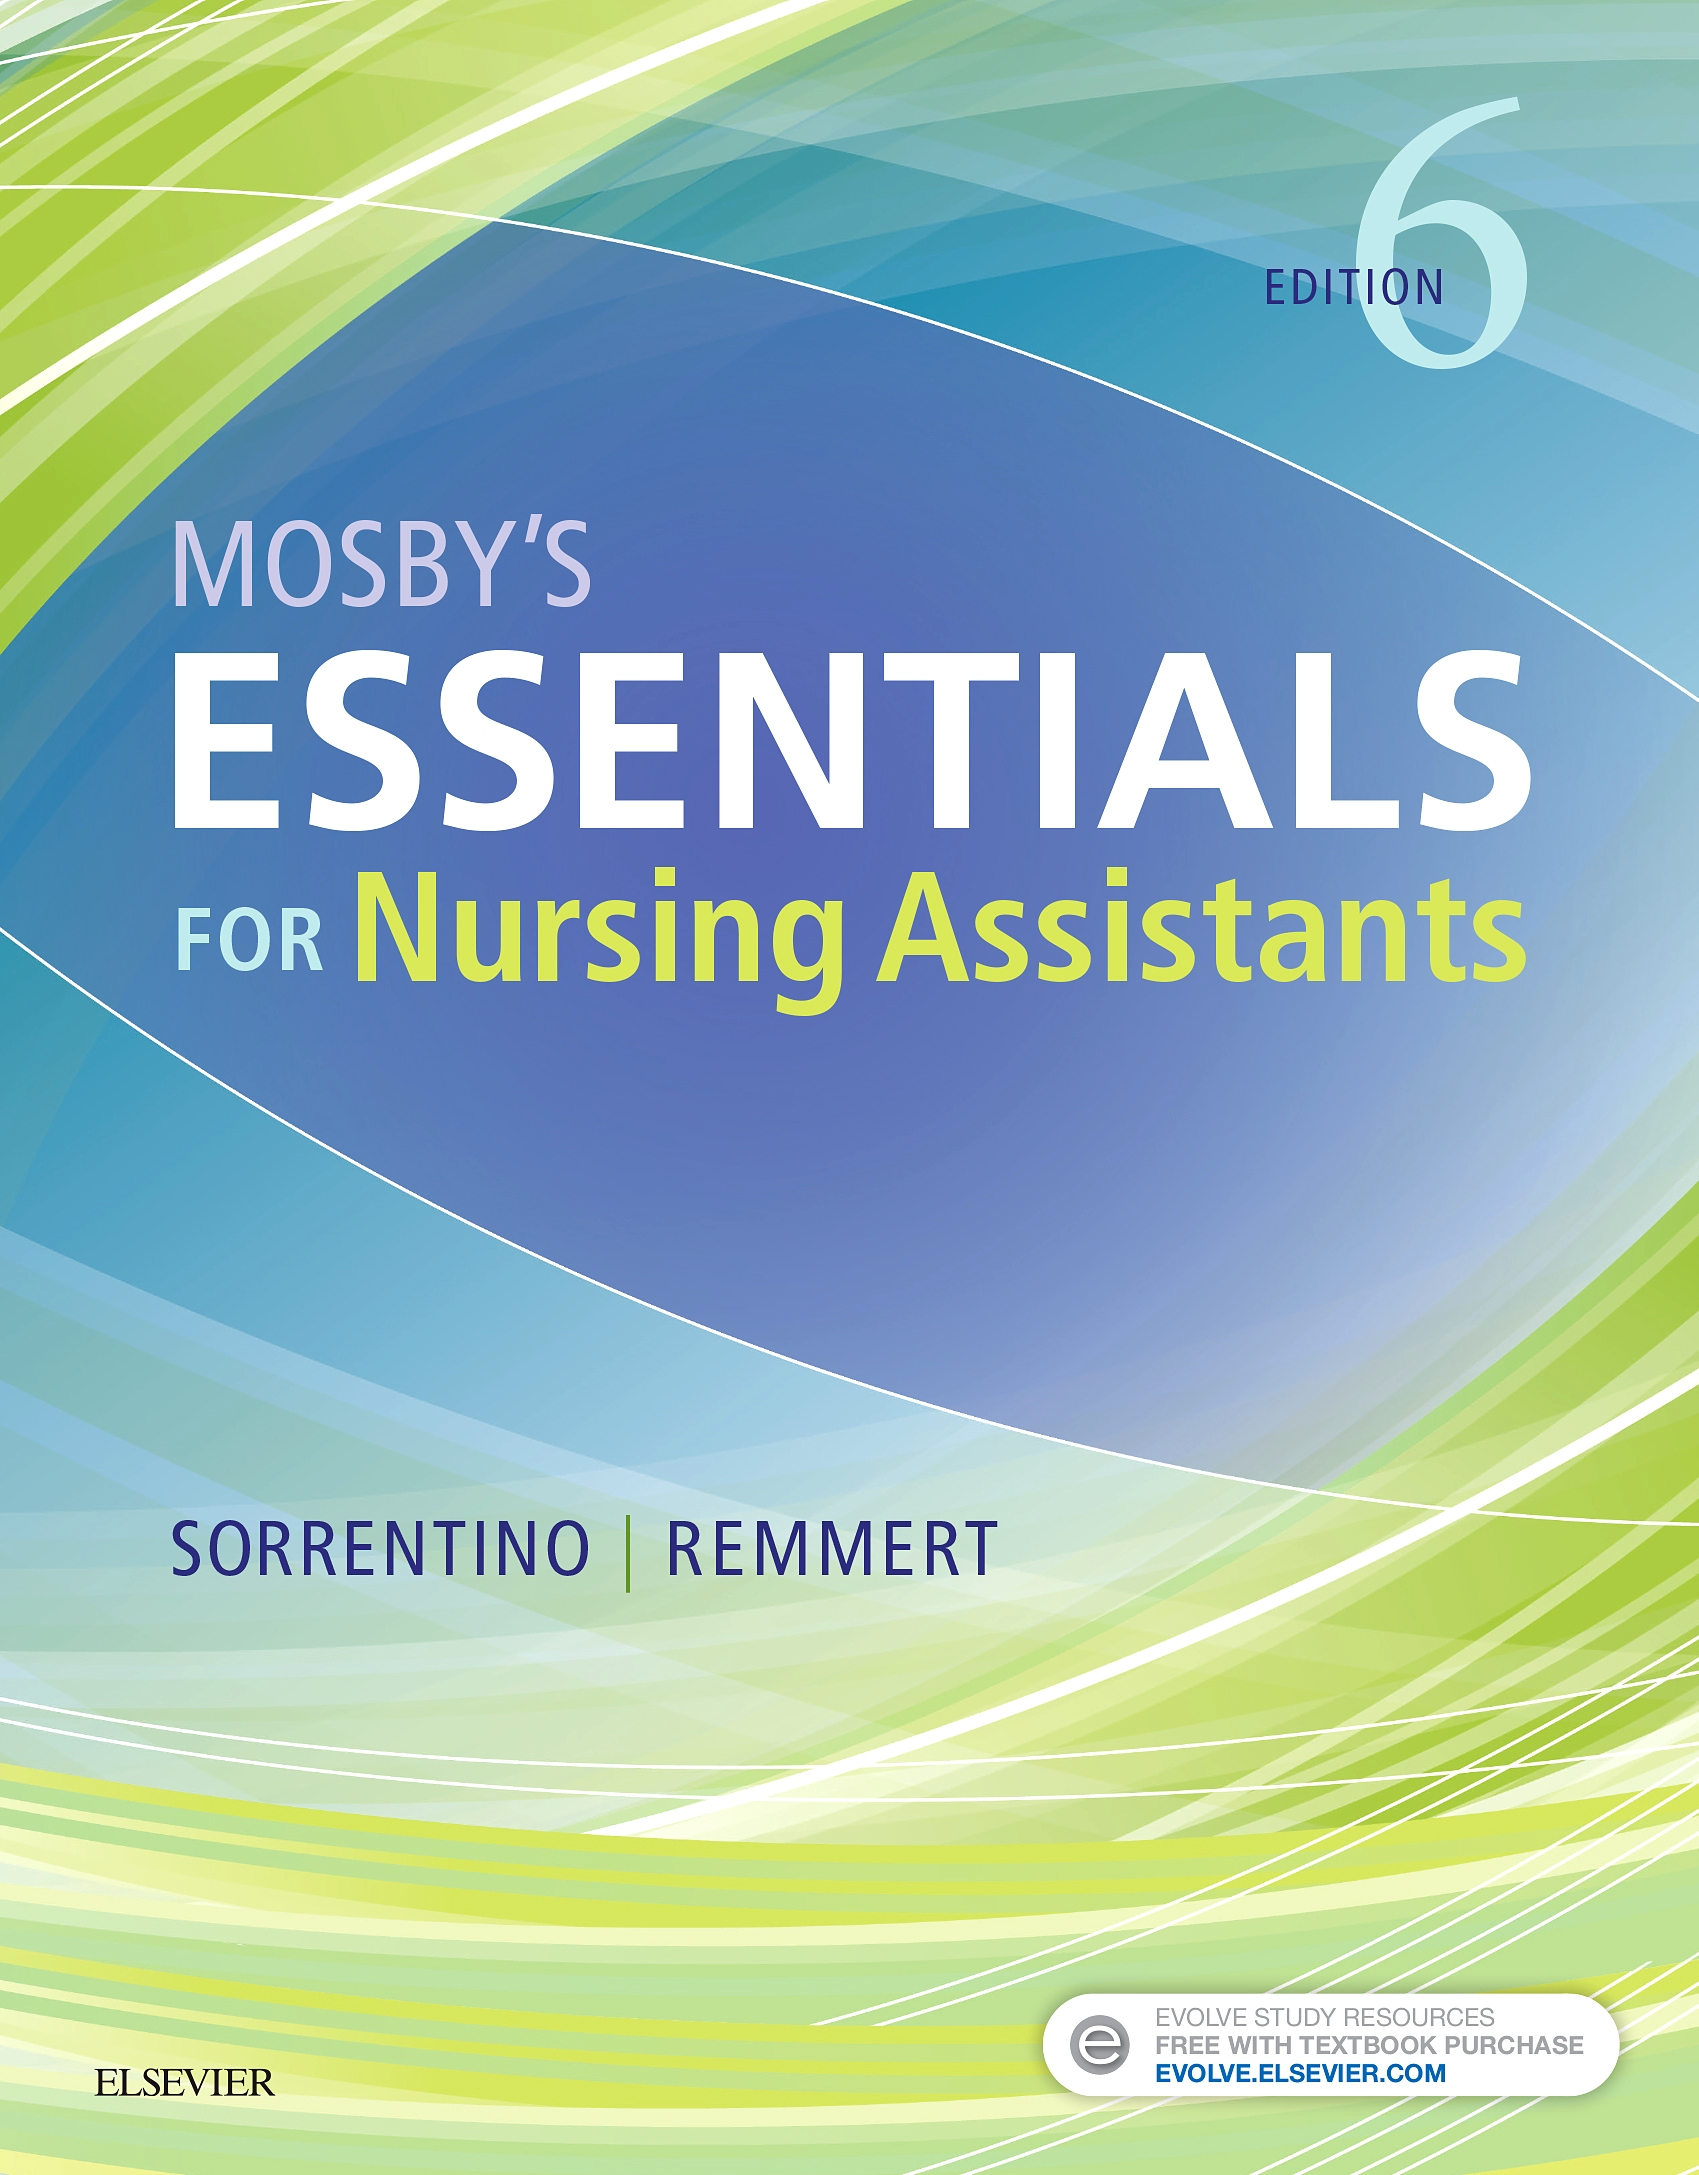 Evolve Resources for Mosby's Essentials for Nursing Assistants, 6th Edition